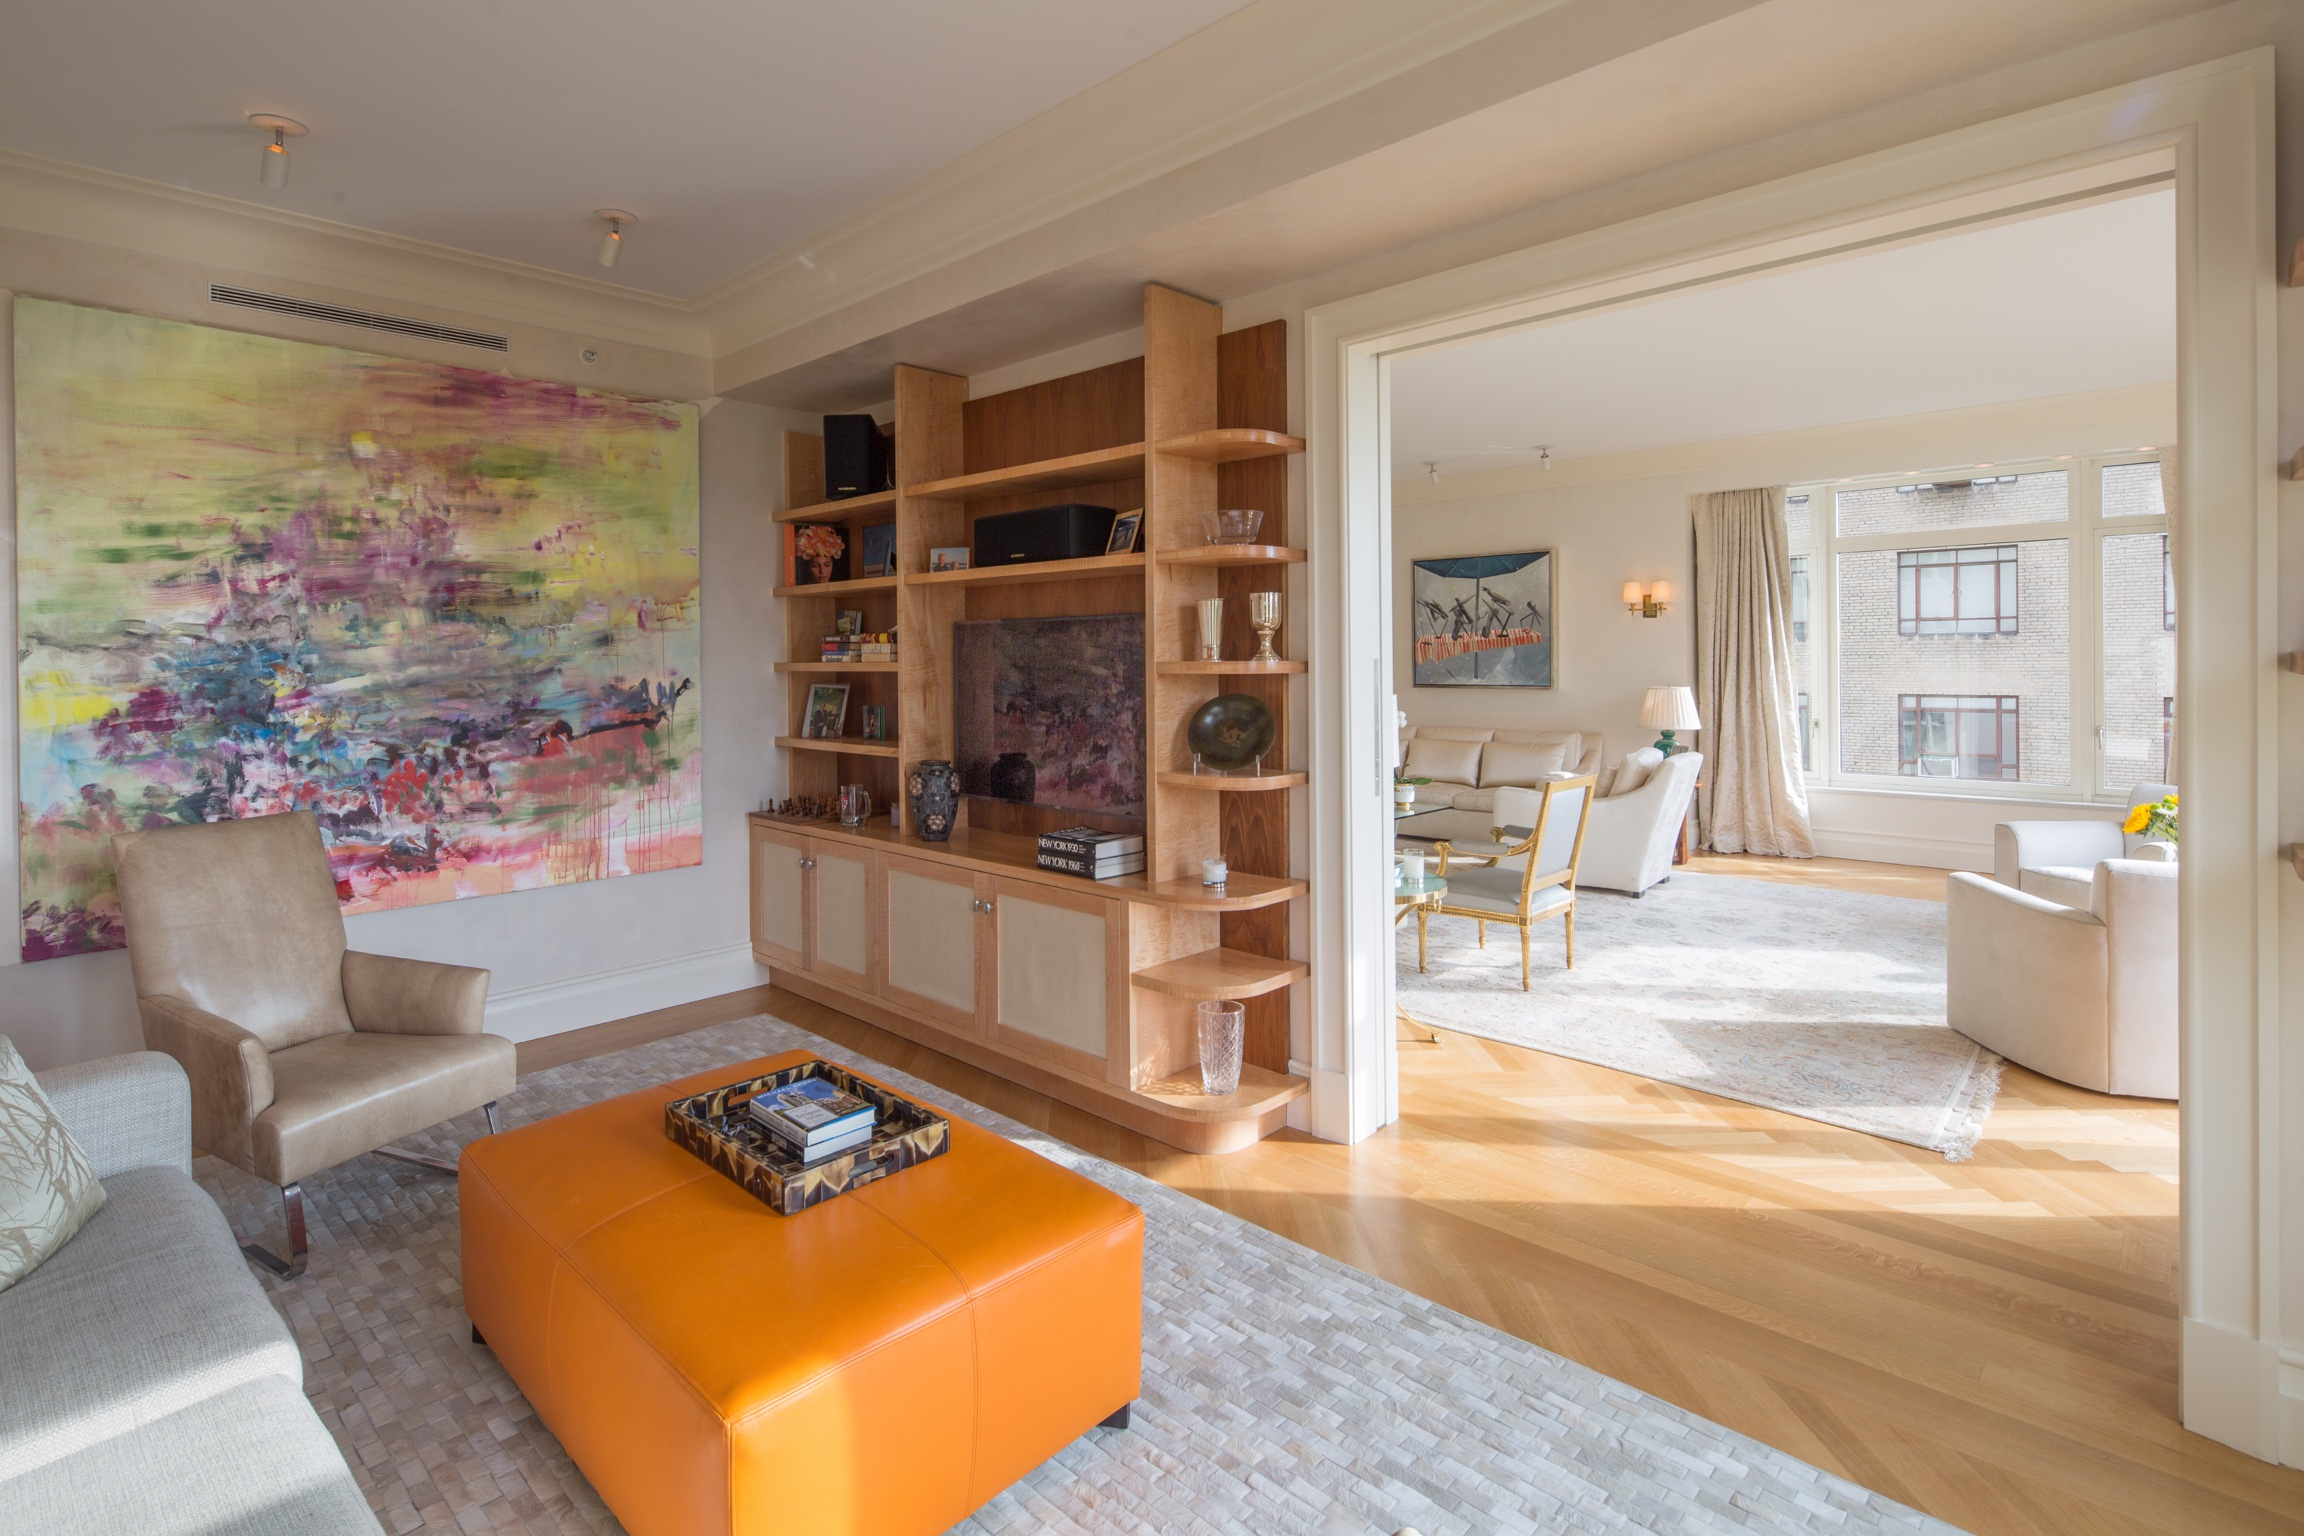 Custom furniture by Kevin Gray | Custom bookcases with two-tone woods, curved corners and raw silk fronts on lower cabinet